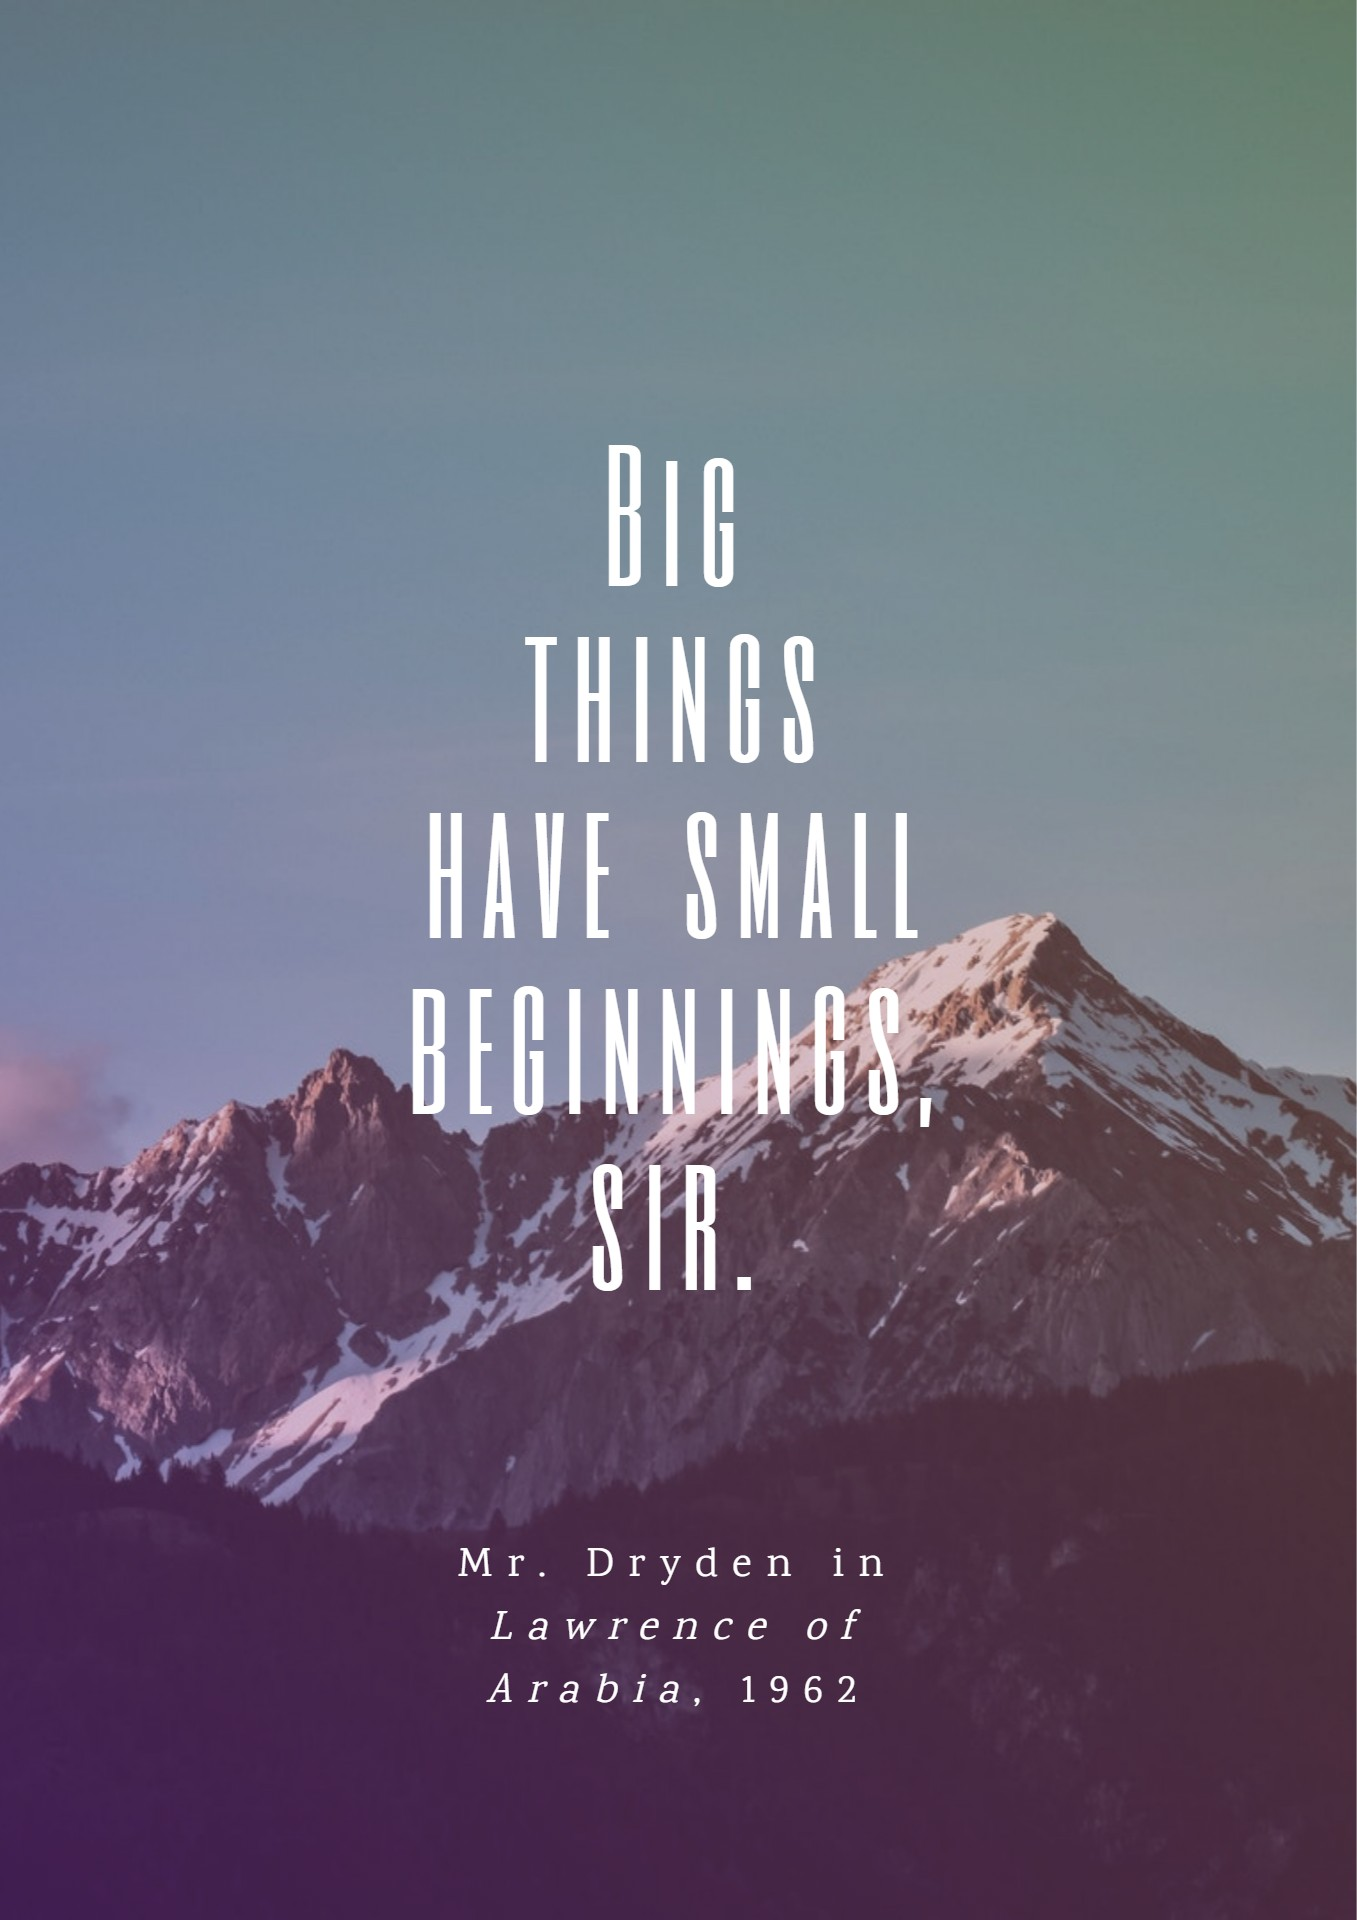 Quotes image of Big things have small beginnings, sir.